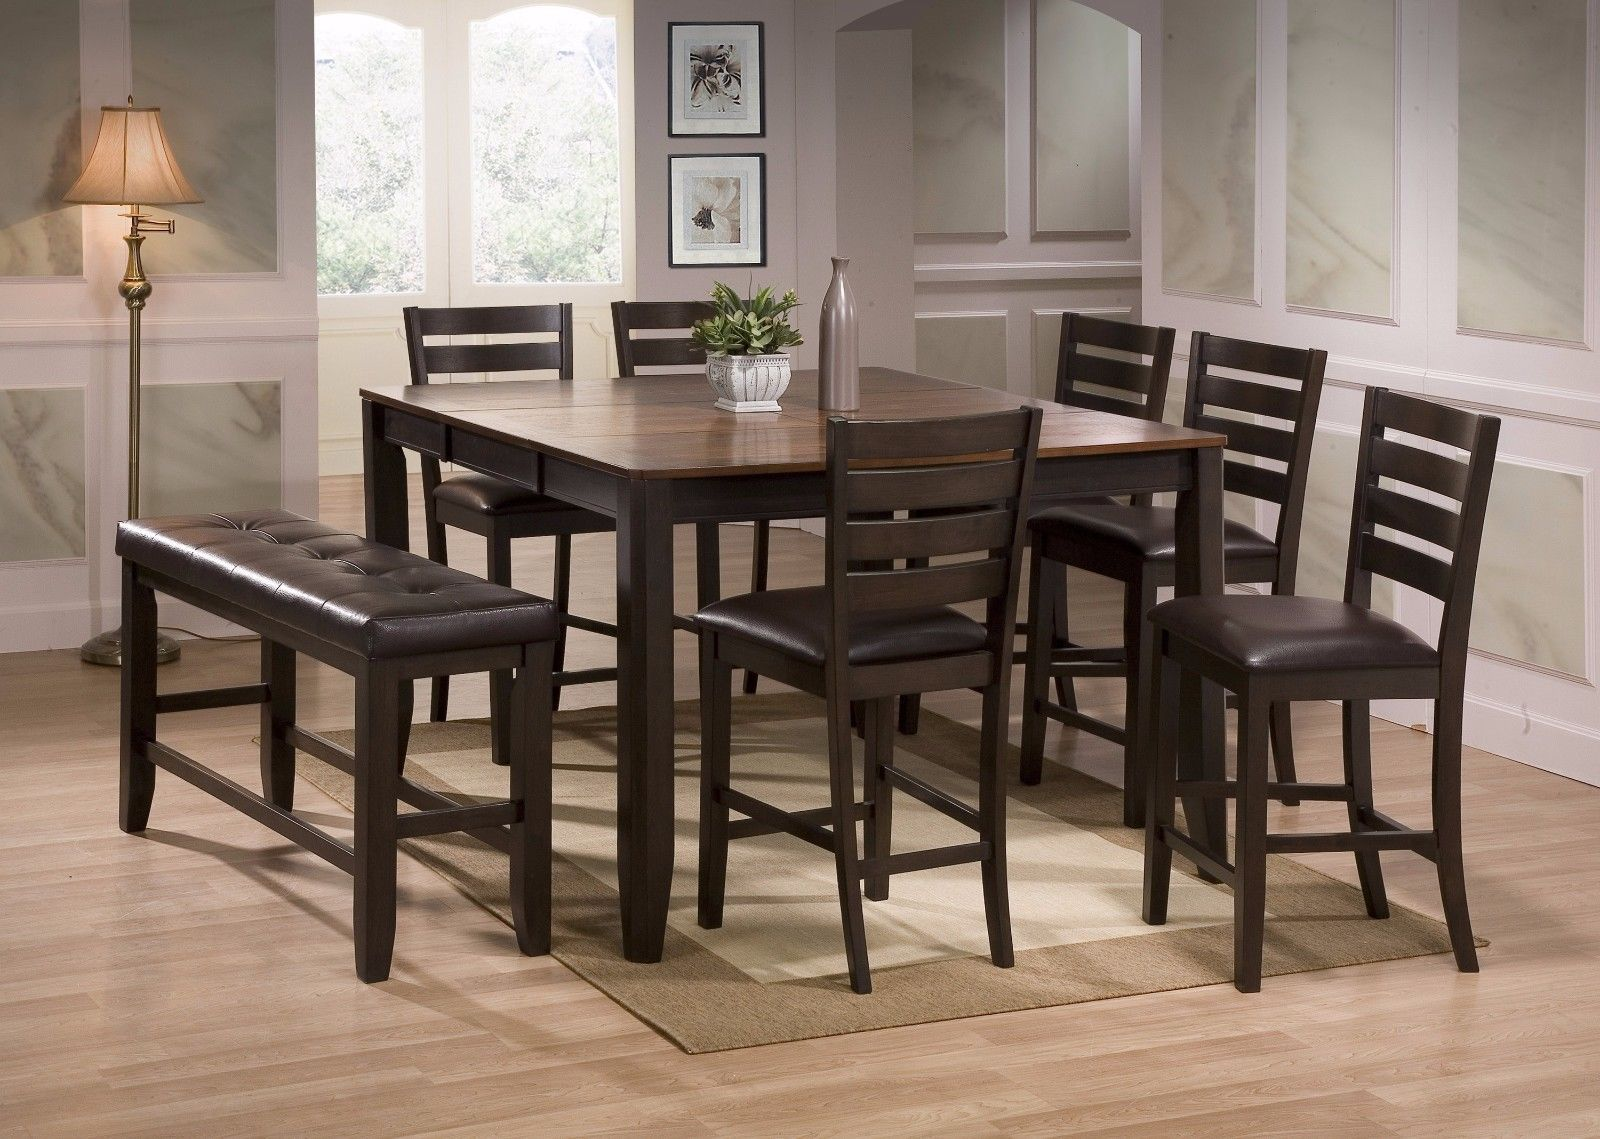 Crown Mark 2728 Dining Room Set 8pc. Elliot Counter Height Contemporary Style